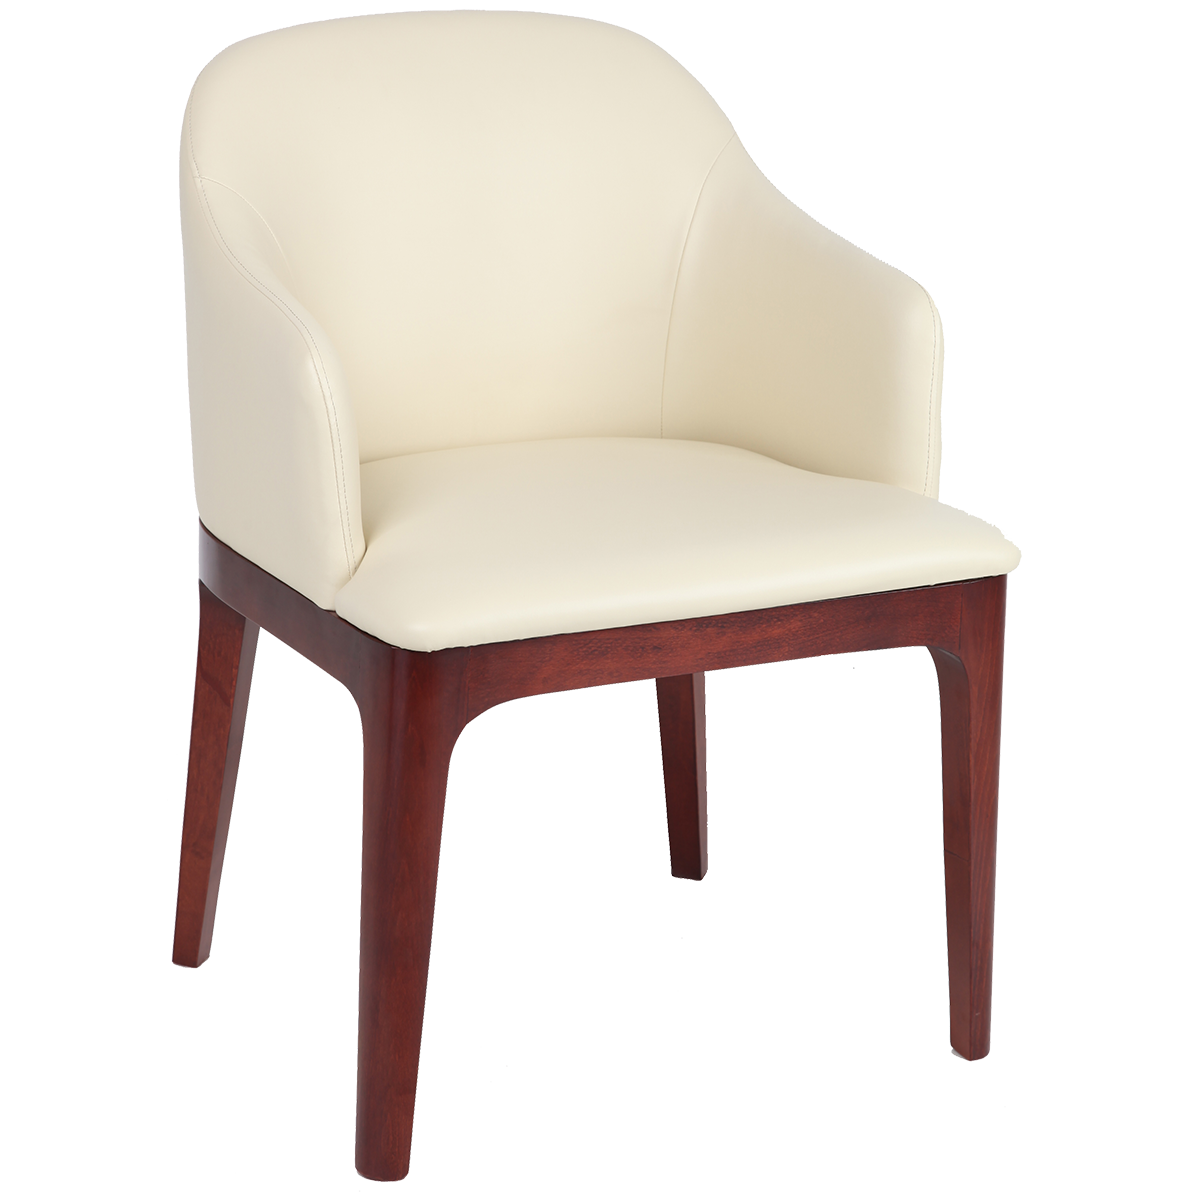 Wood Framed, Wrap-around Back Lounge Chair